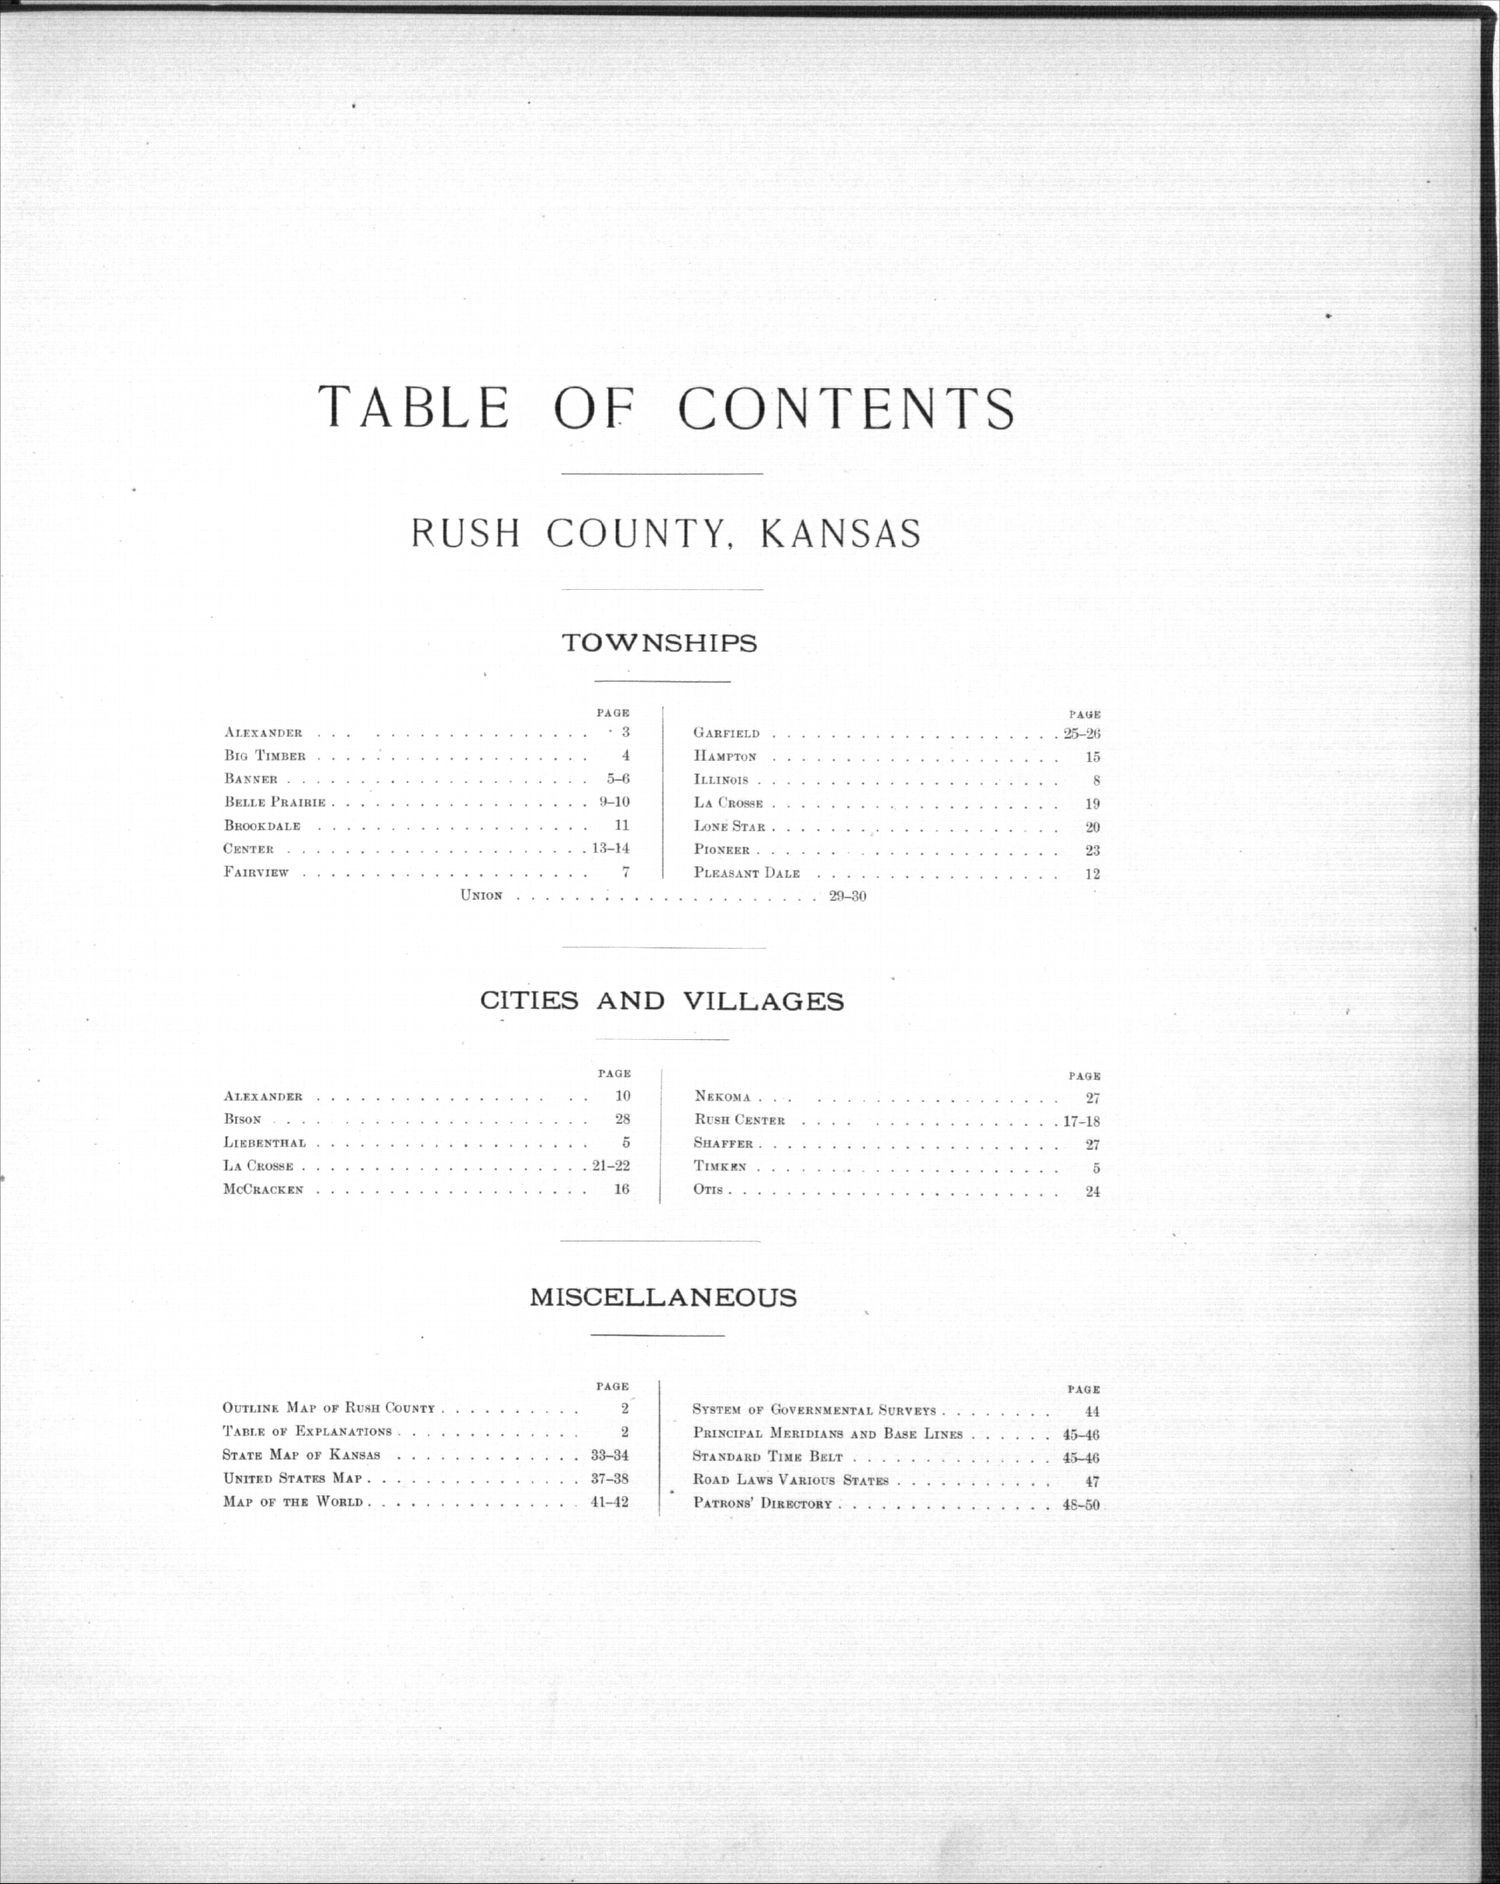 Plat book, Rush County, Kansas - Table of Contents